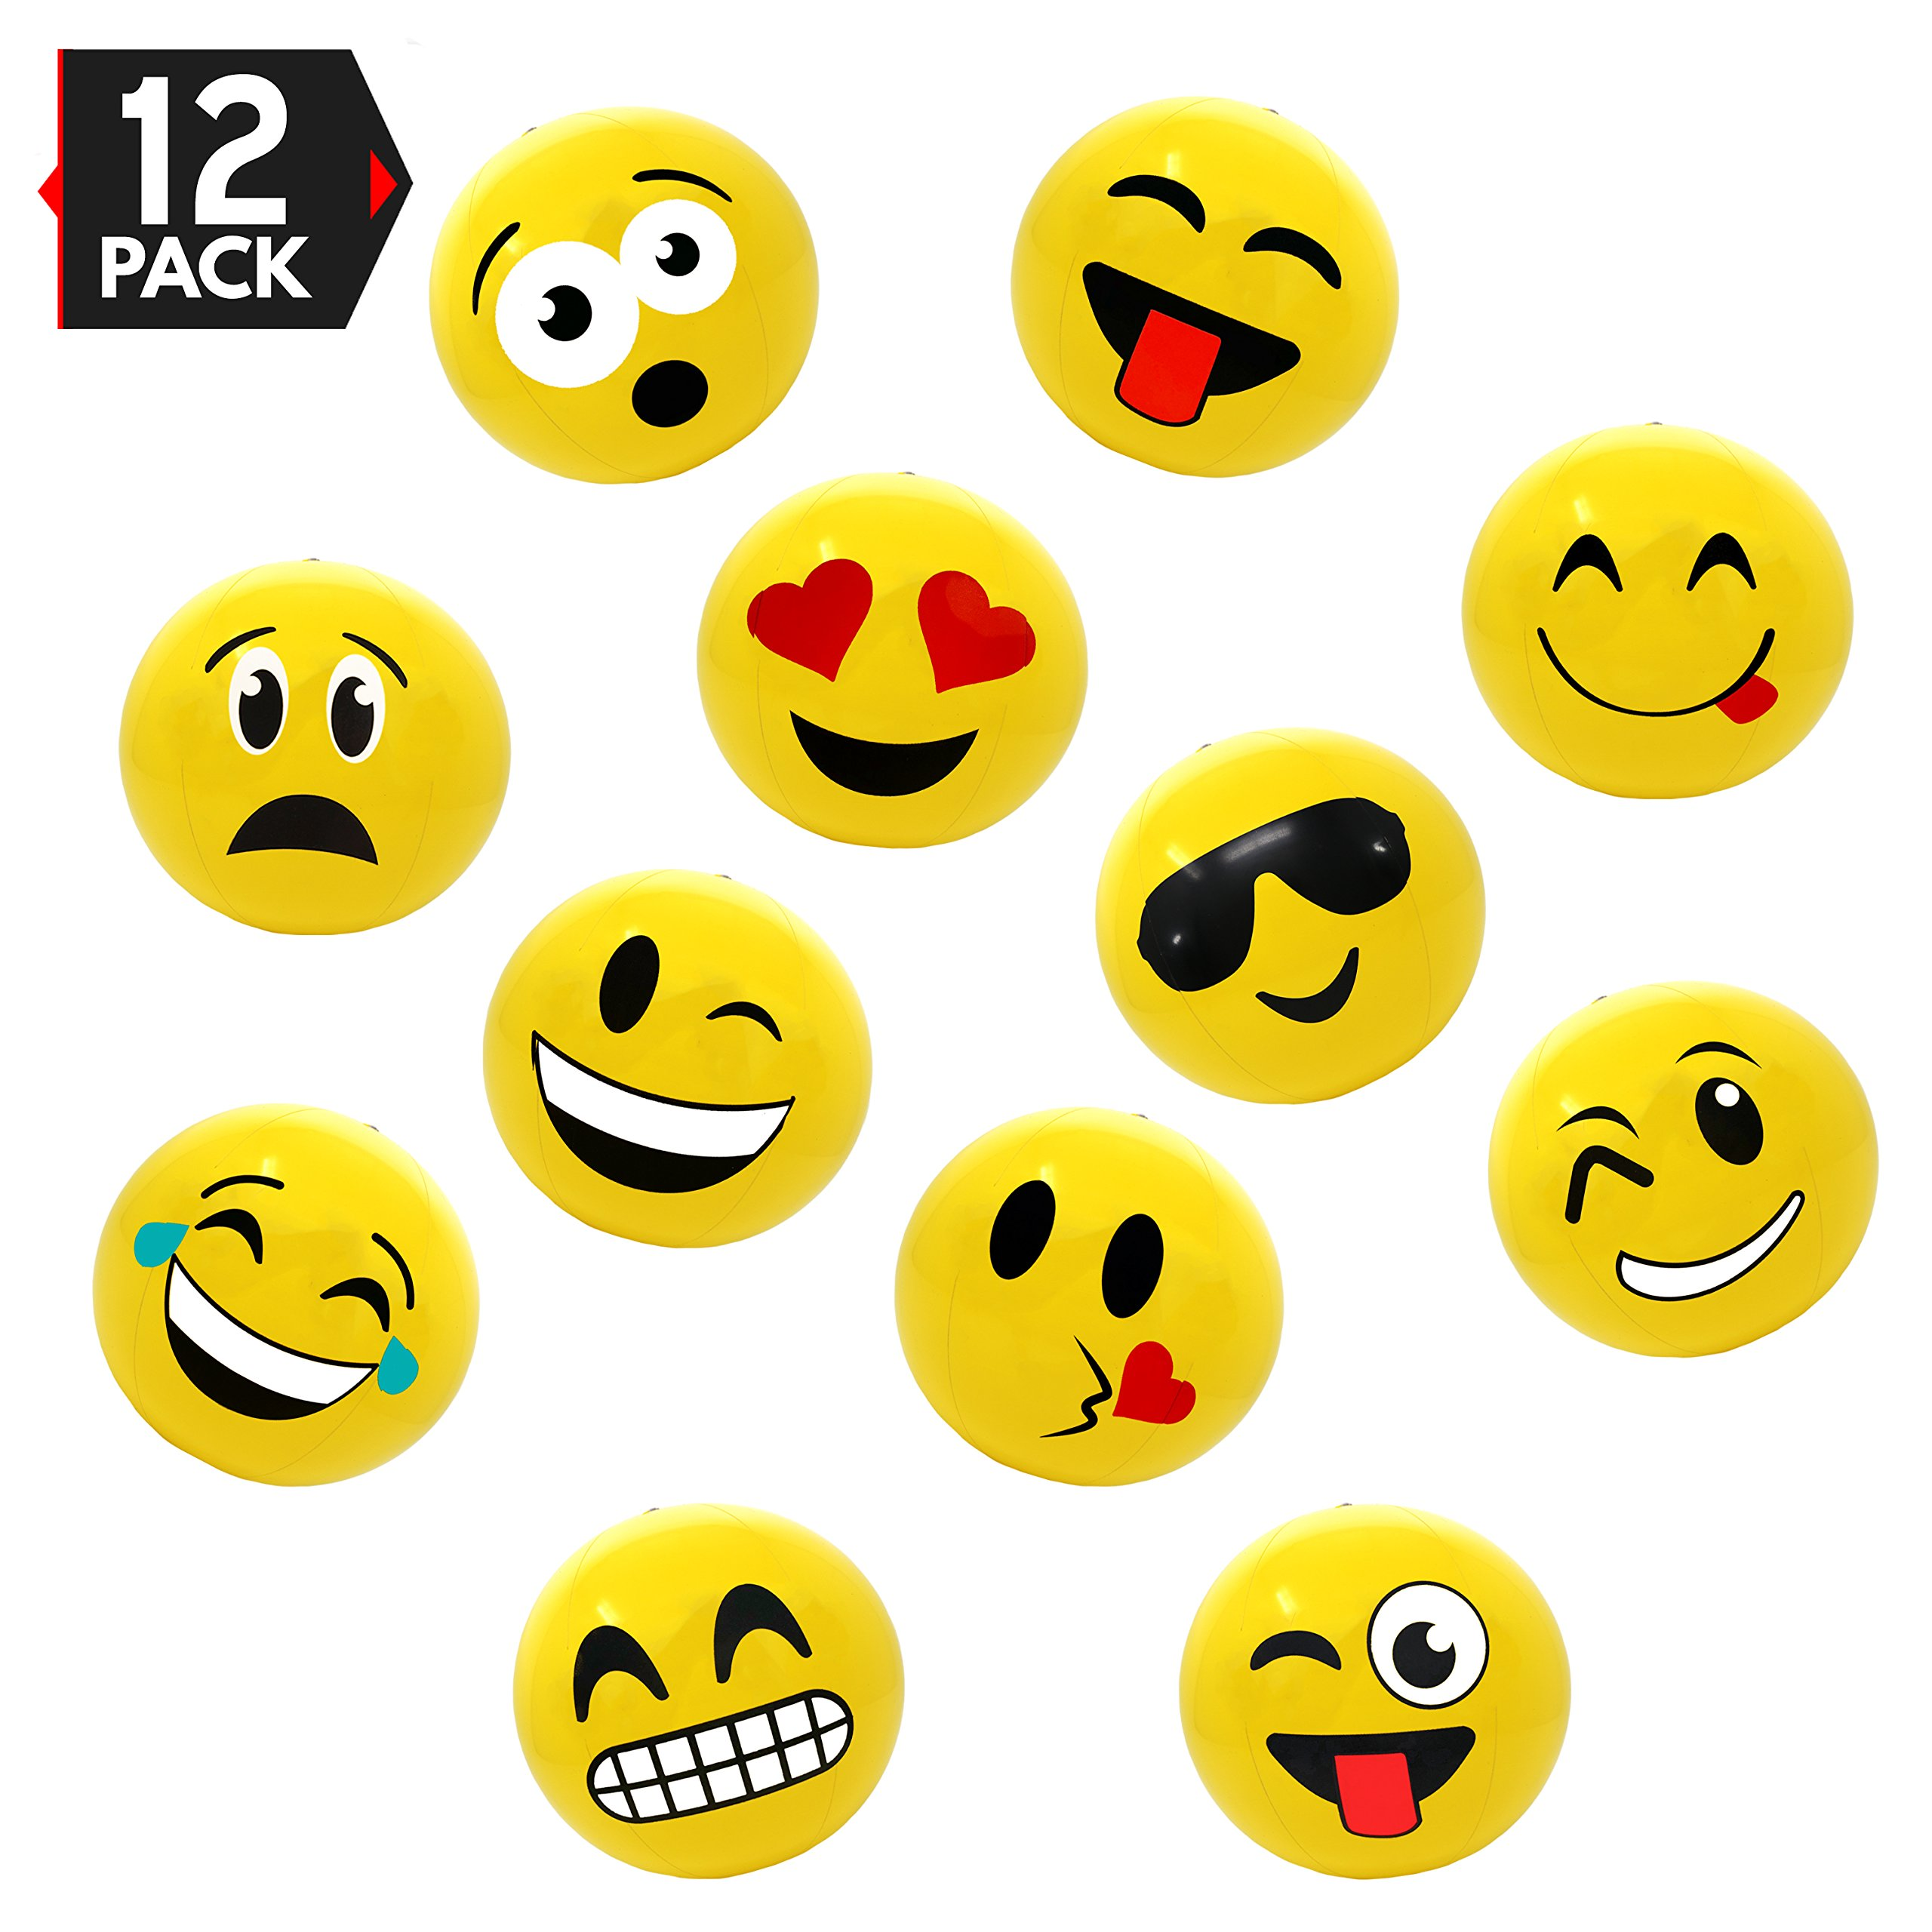 16'' Emoji Party Pack Inflatable Beach Balls - Beach Pool Party Toys (12 Pack) by Big Mo's Toys